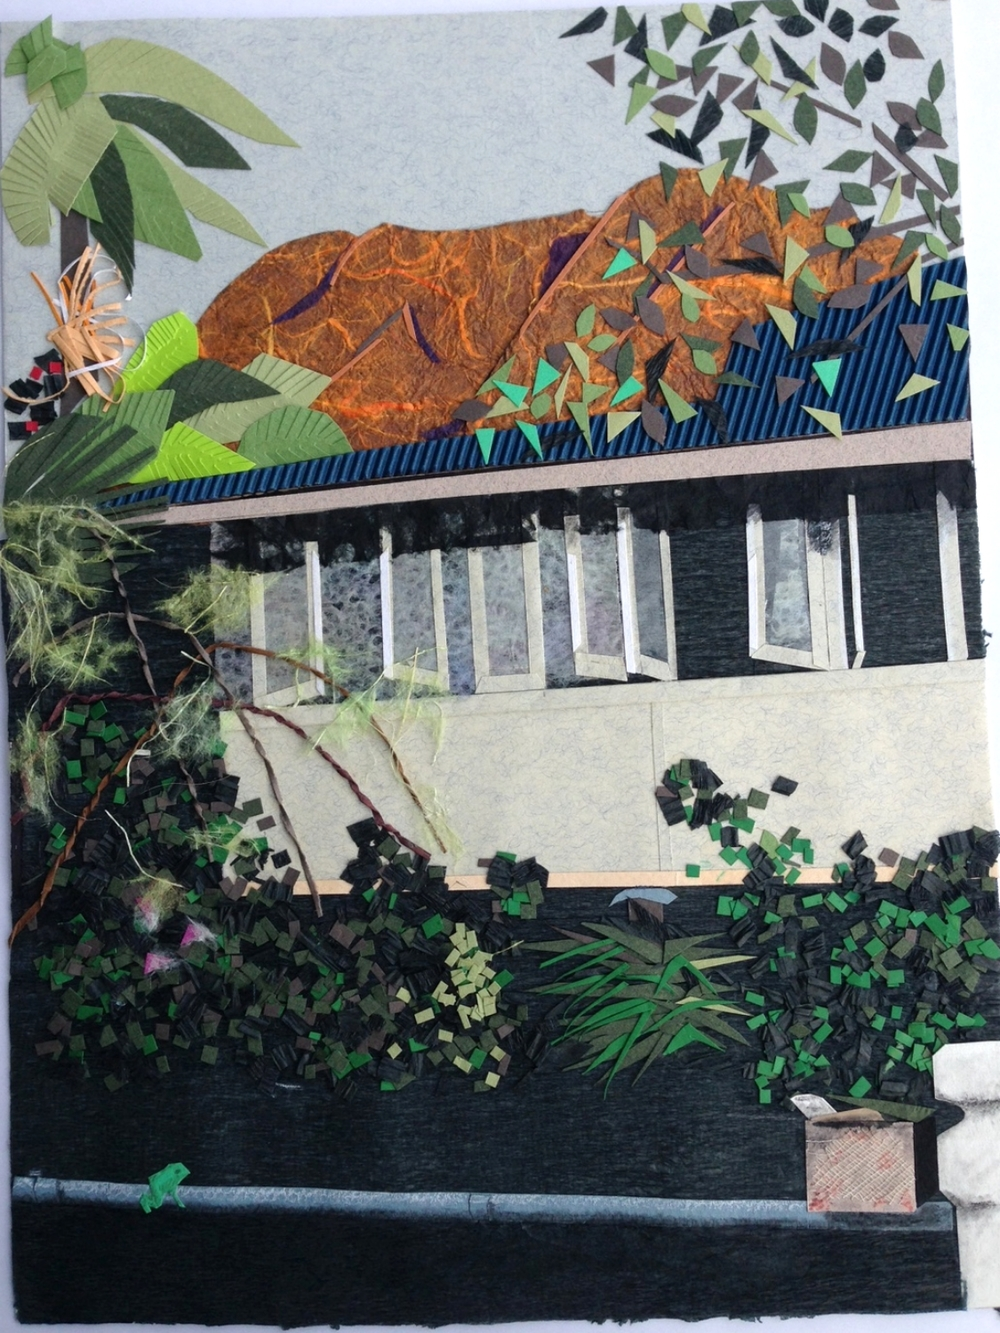 At My House .  Paper cuts and original collage for children's book illustration. 2001  ©  Ida Montague  Pictured: Castle Hill, Townsville, North Queensland.